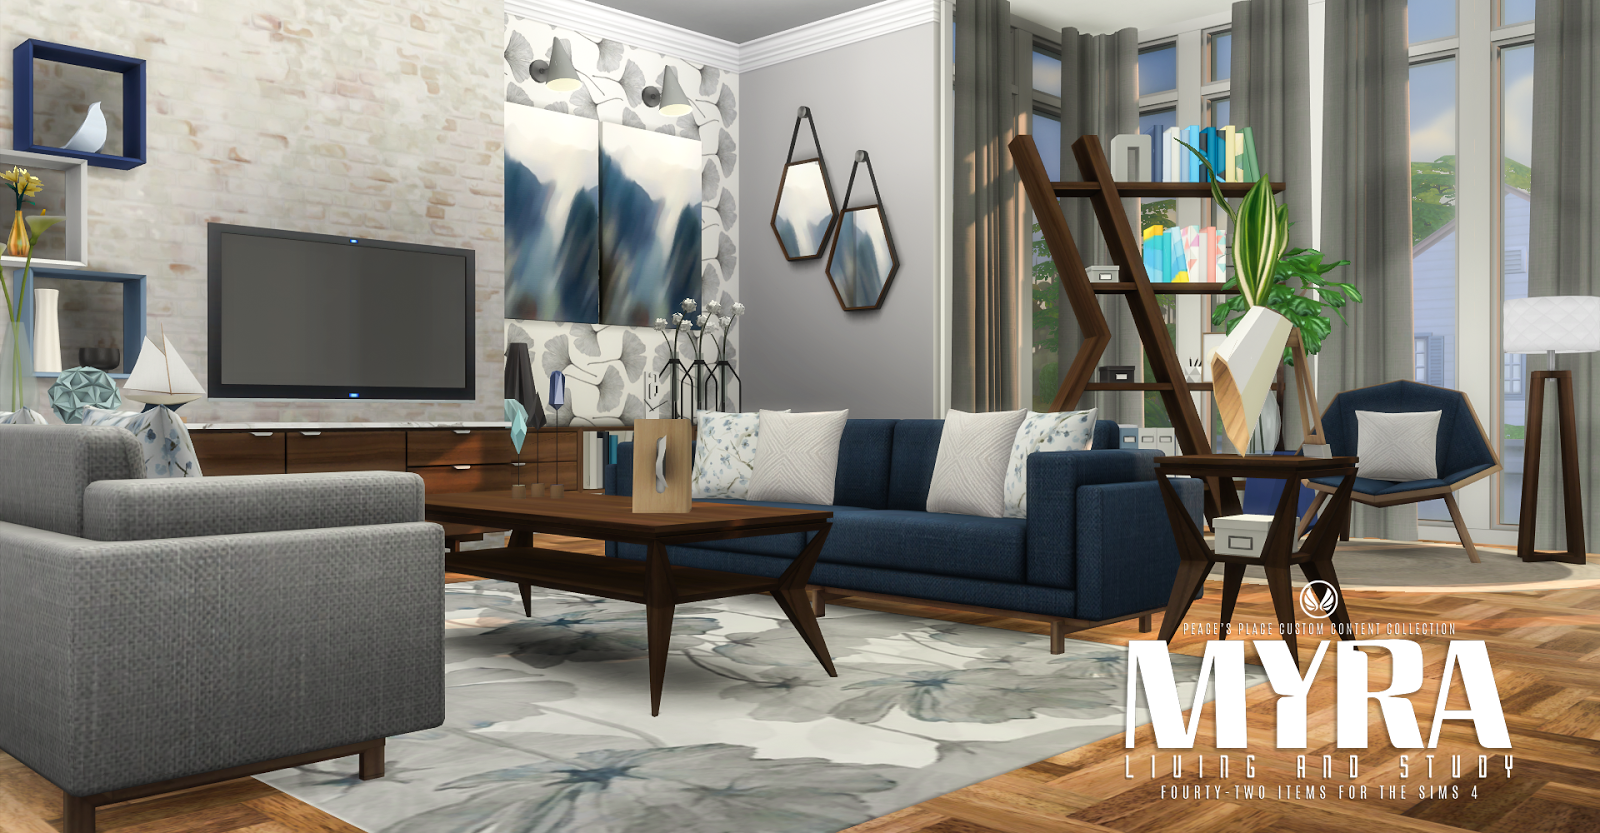 My Sims 4 Blog: Myra Living Room Set by Peacemaker ic